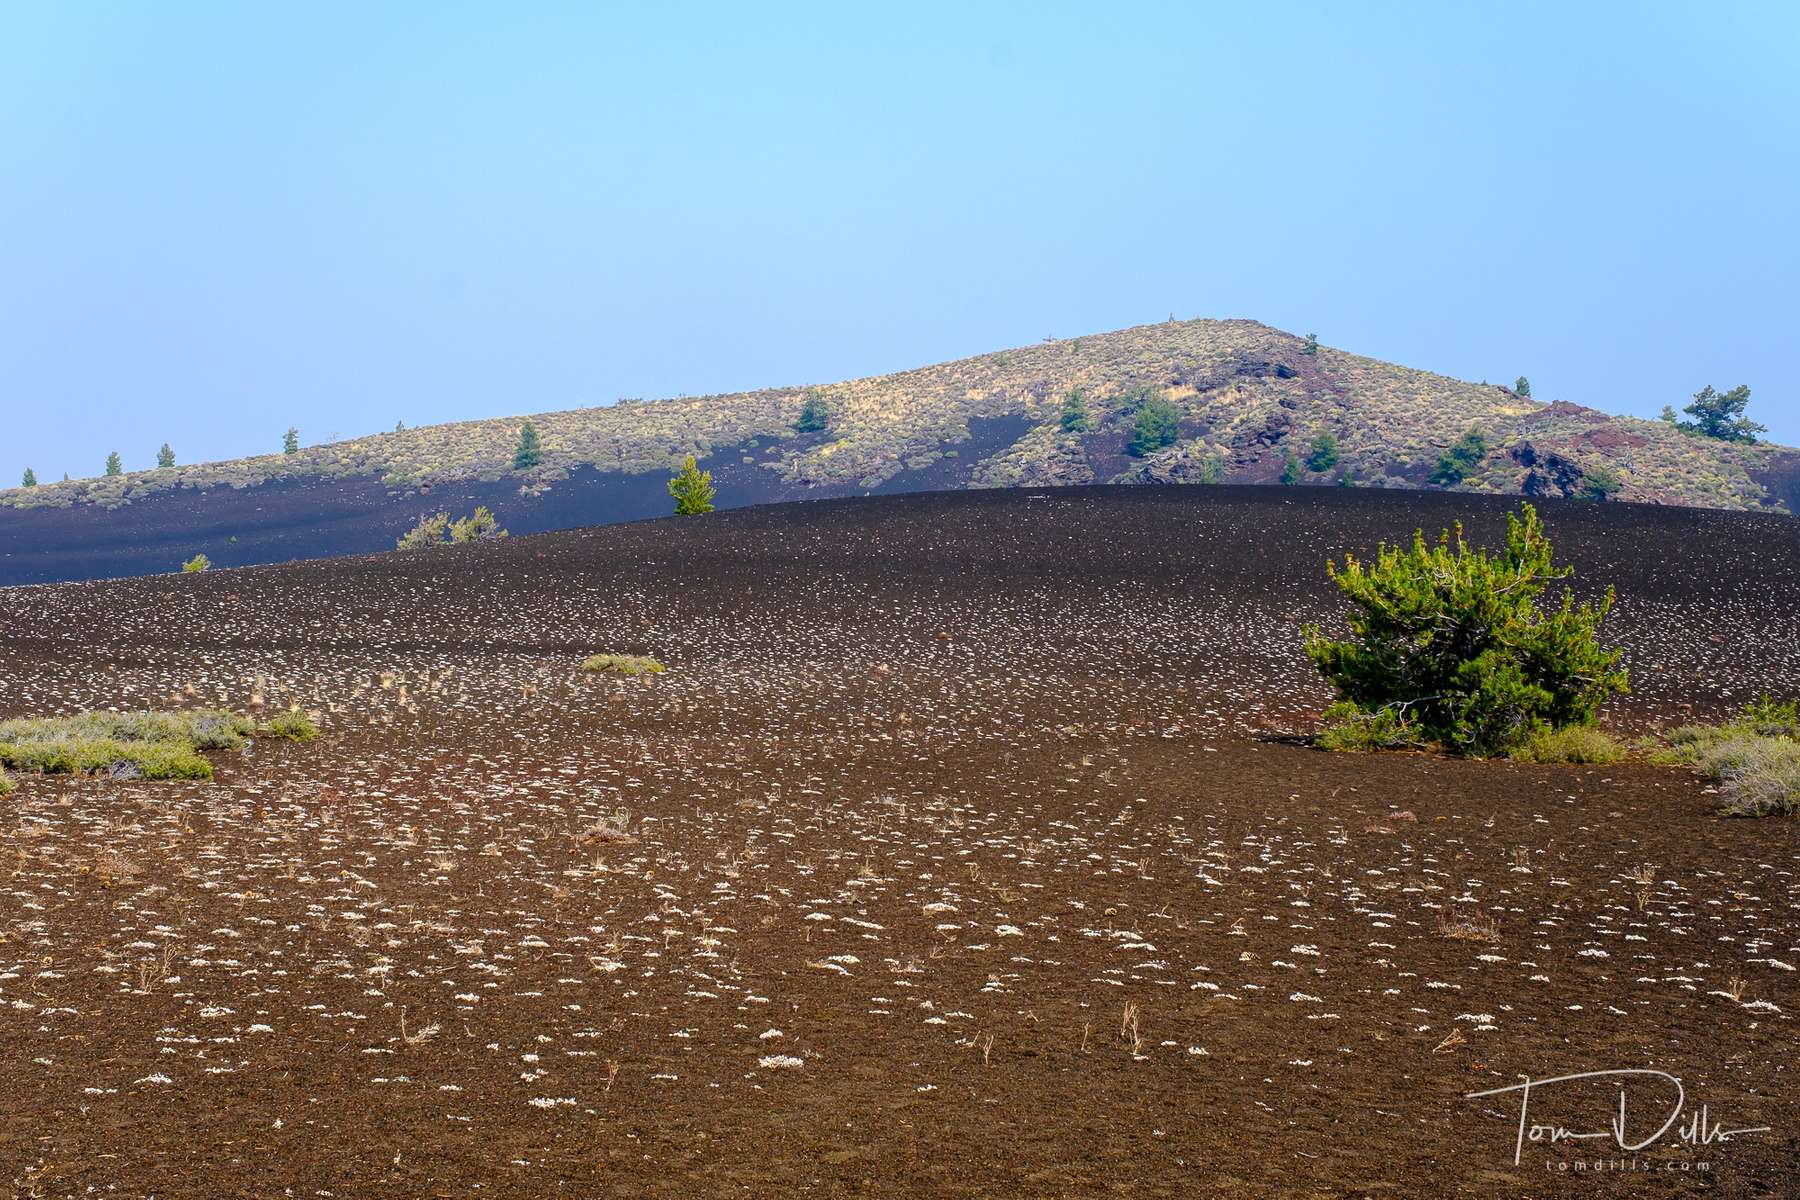 Craters of the Moon National Monument and Preserve near Arco, Idaho